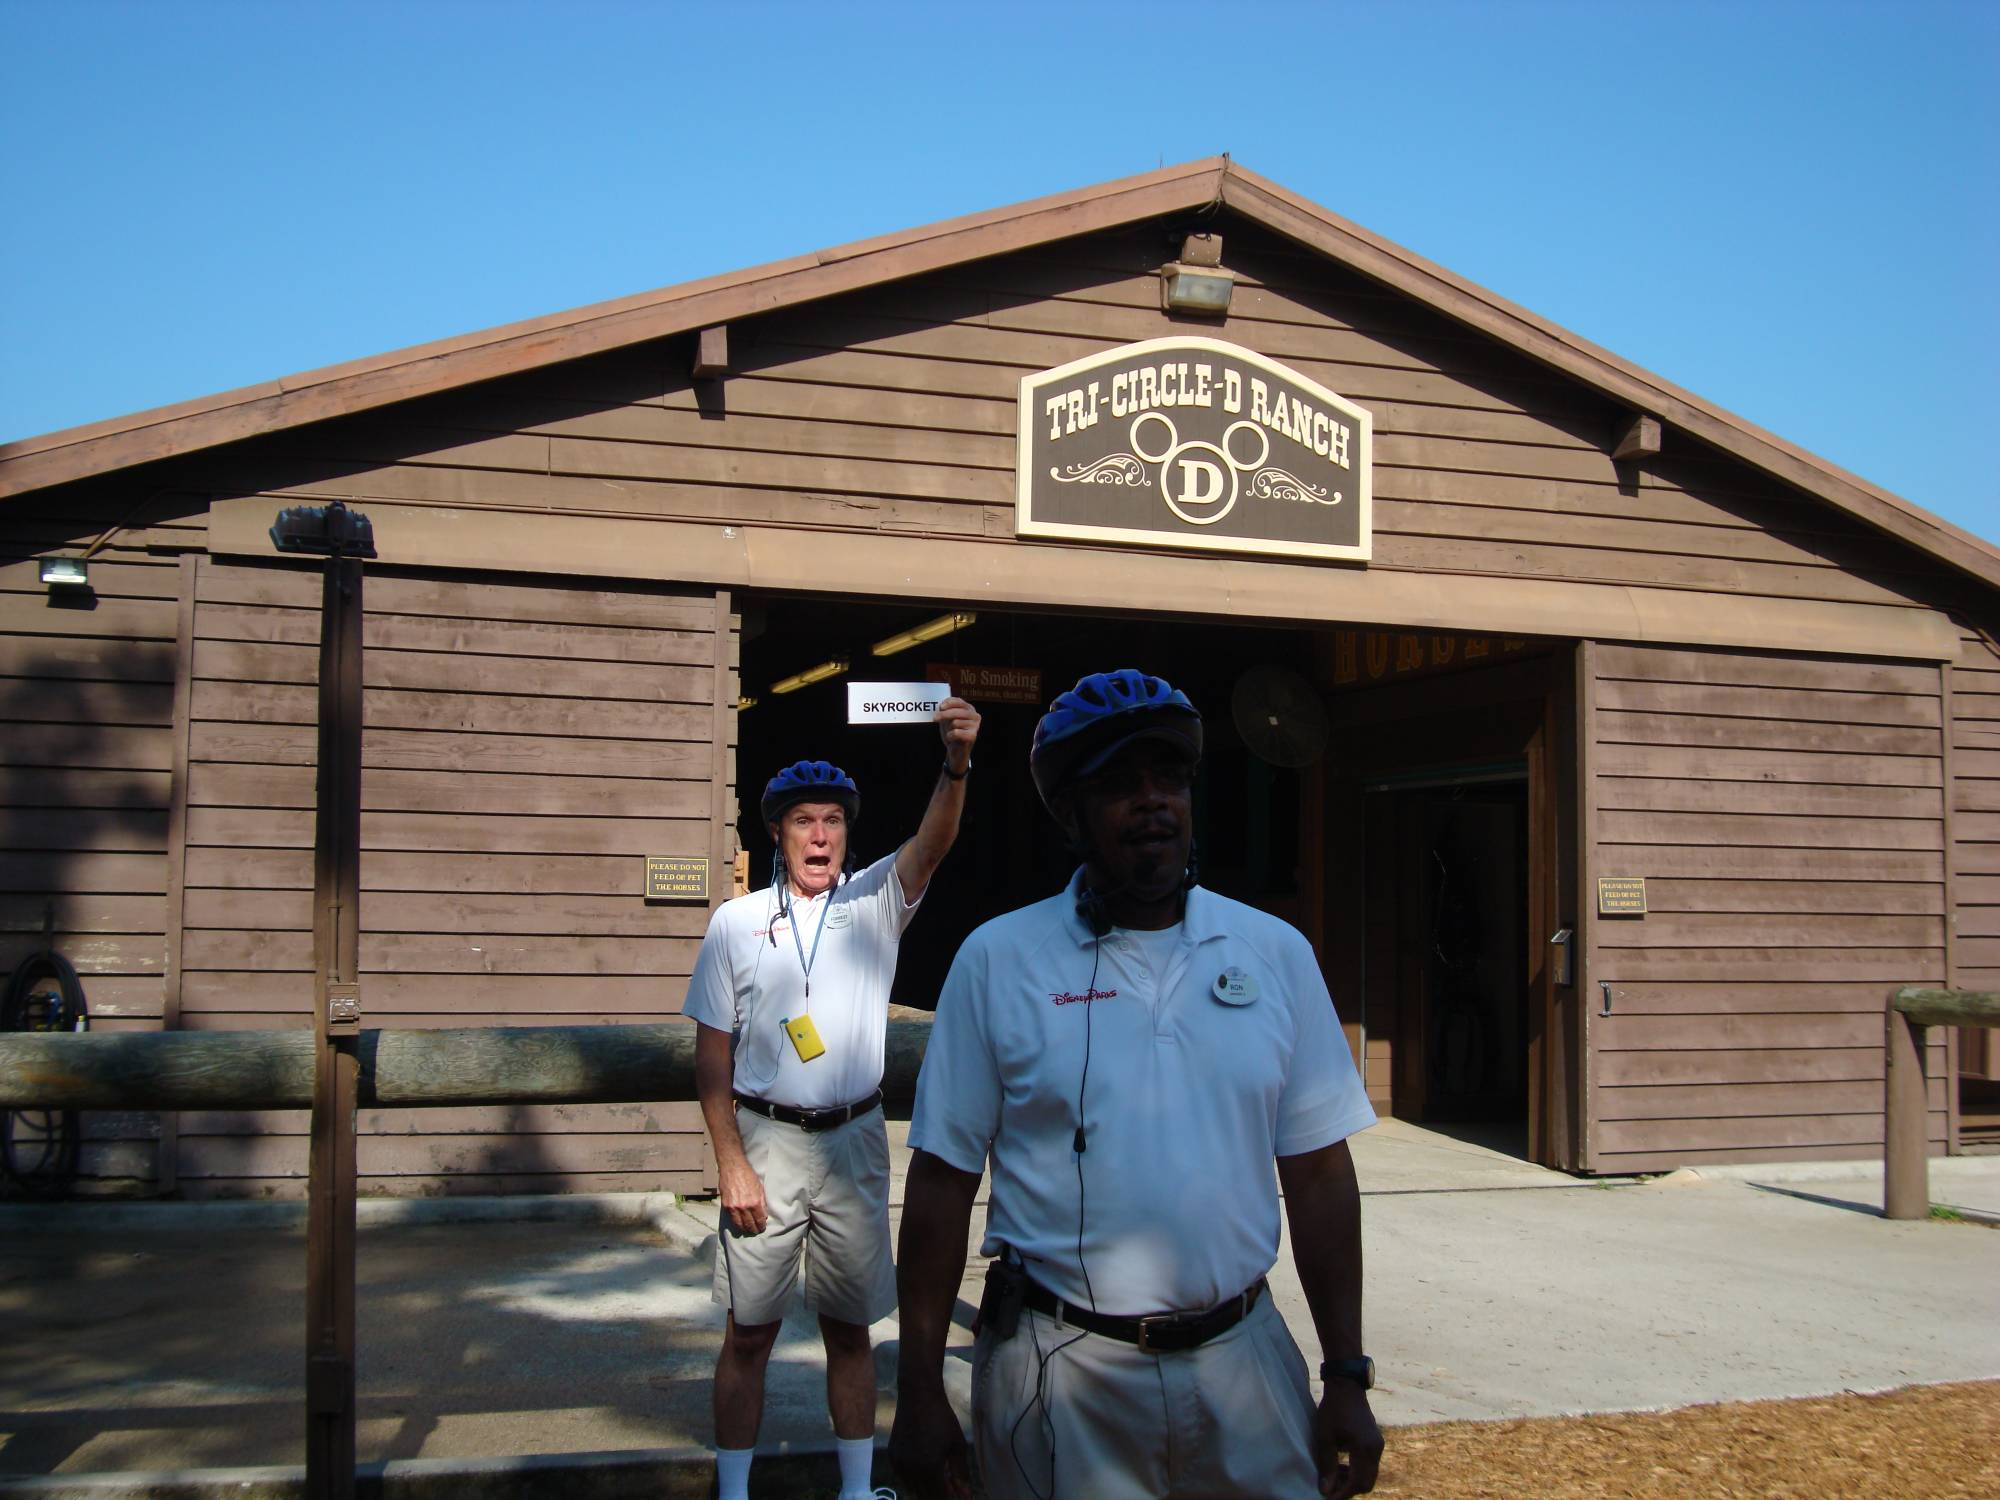 Explore Fort Wilderness on a Segway |PassPorter.com